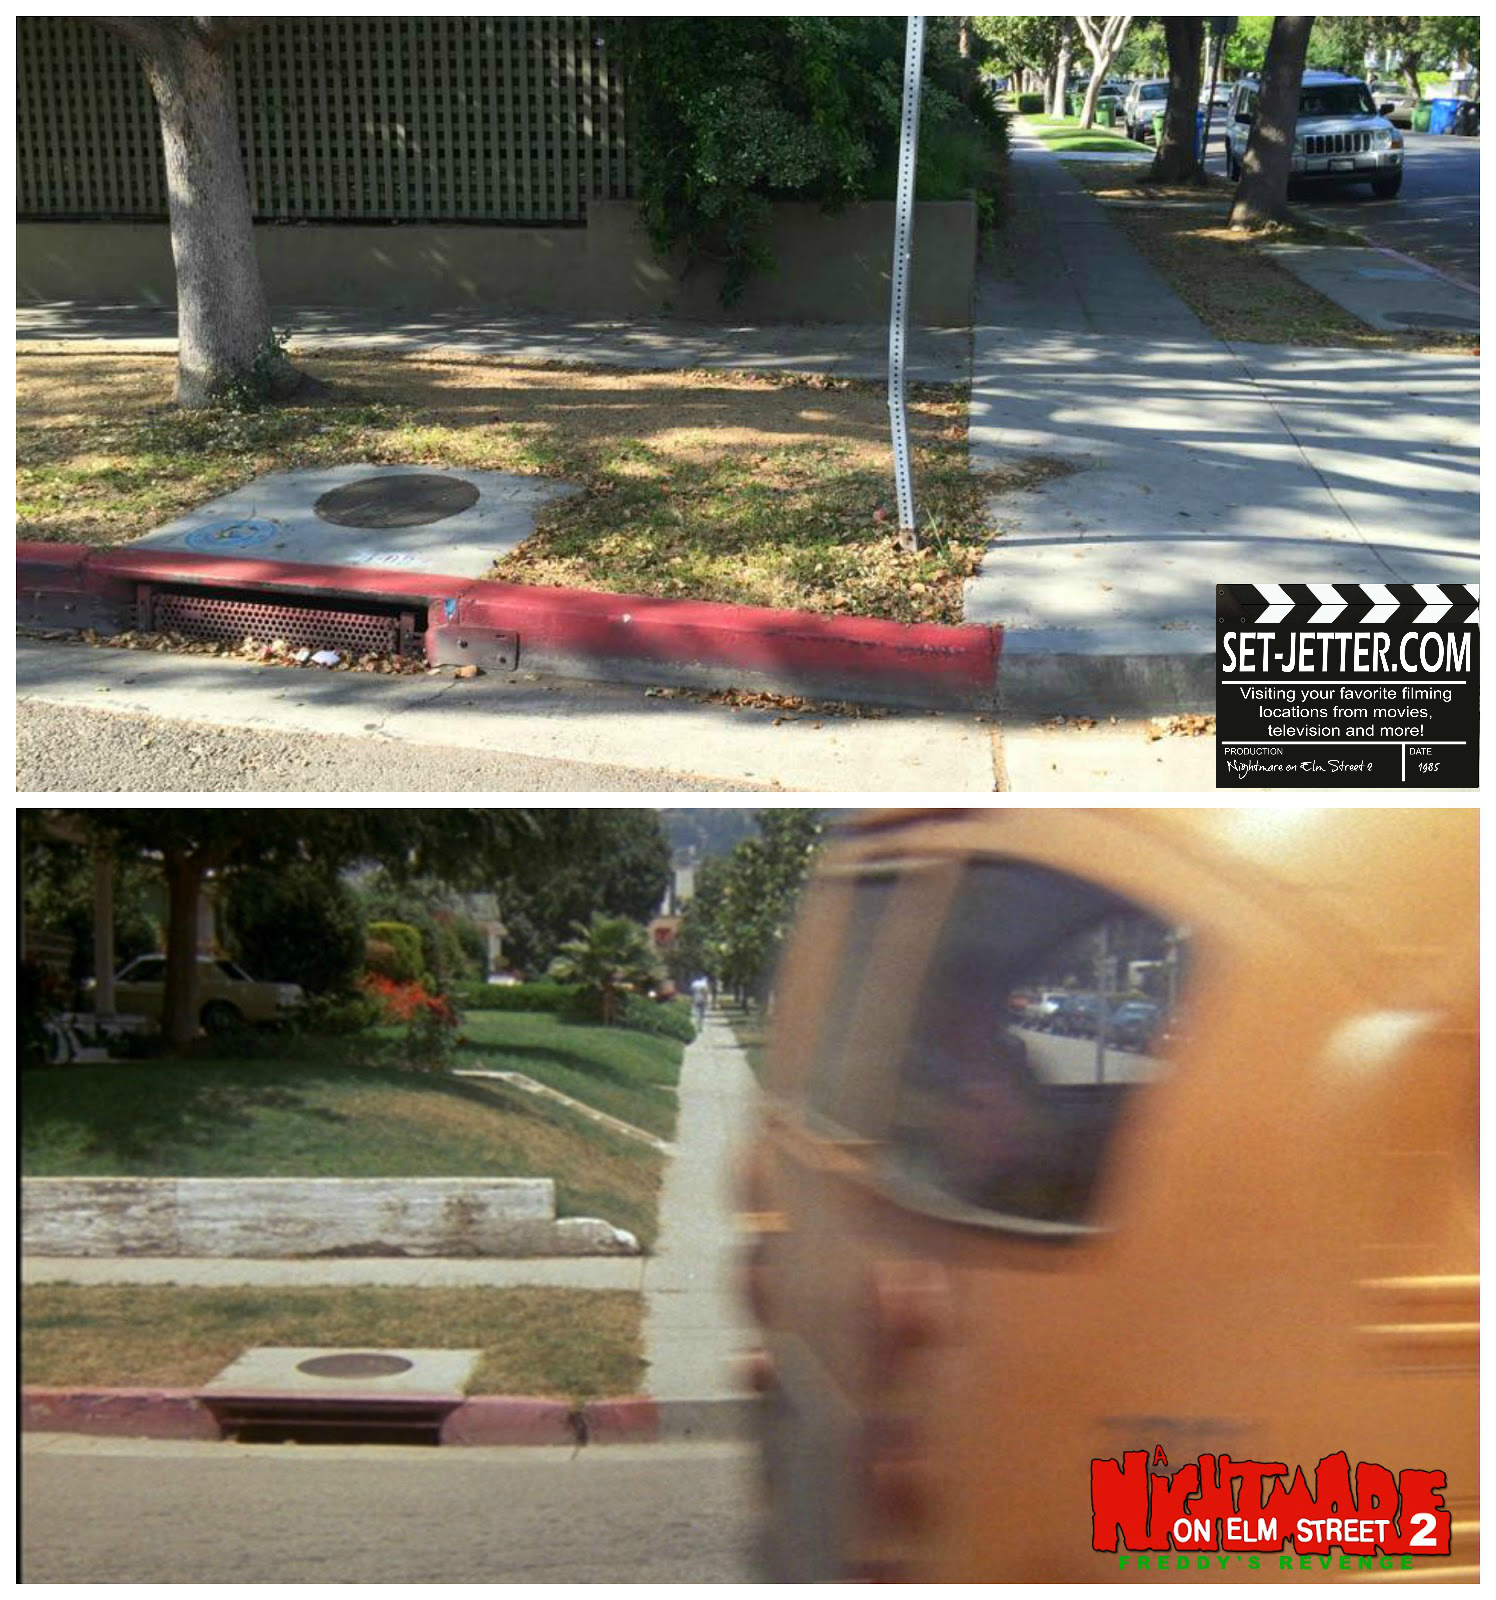 Nightmare on Elm Street Part 2 comparison 03.jpg